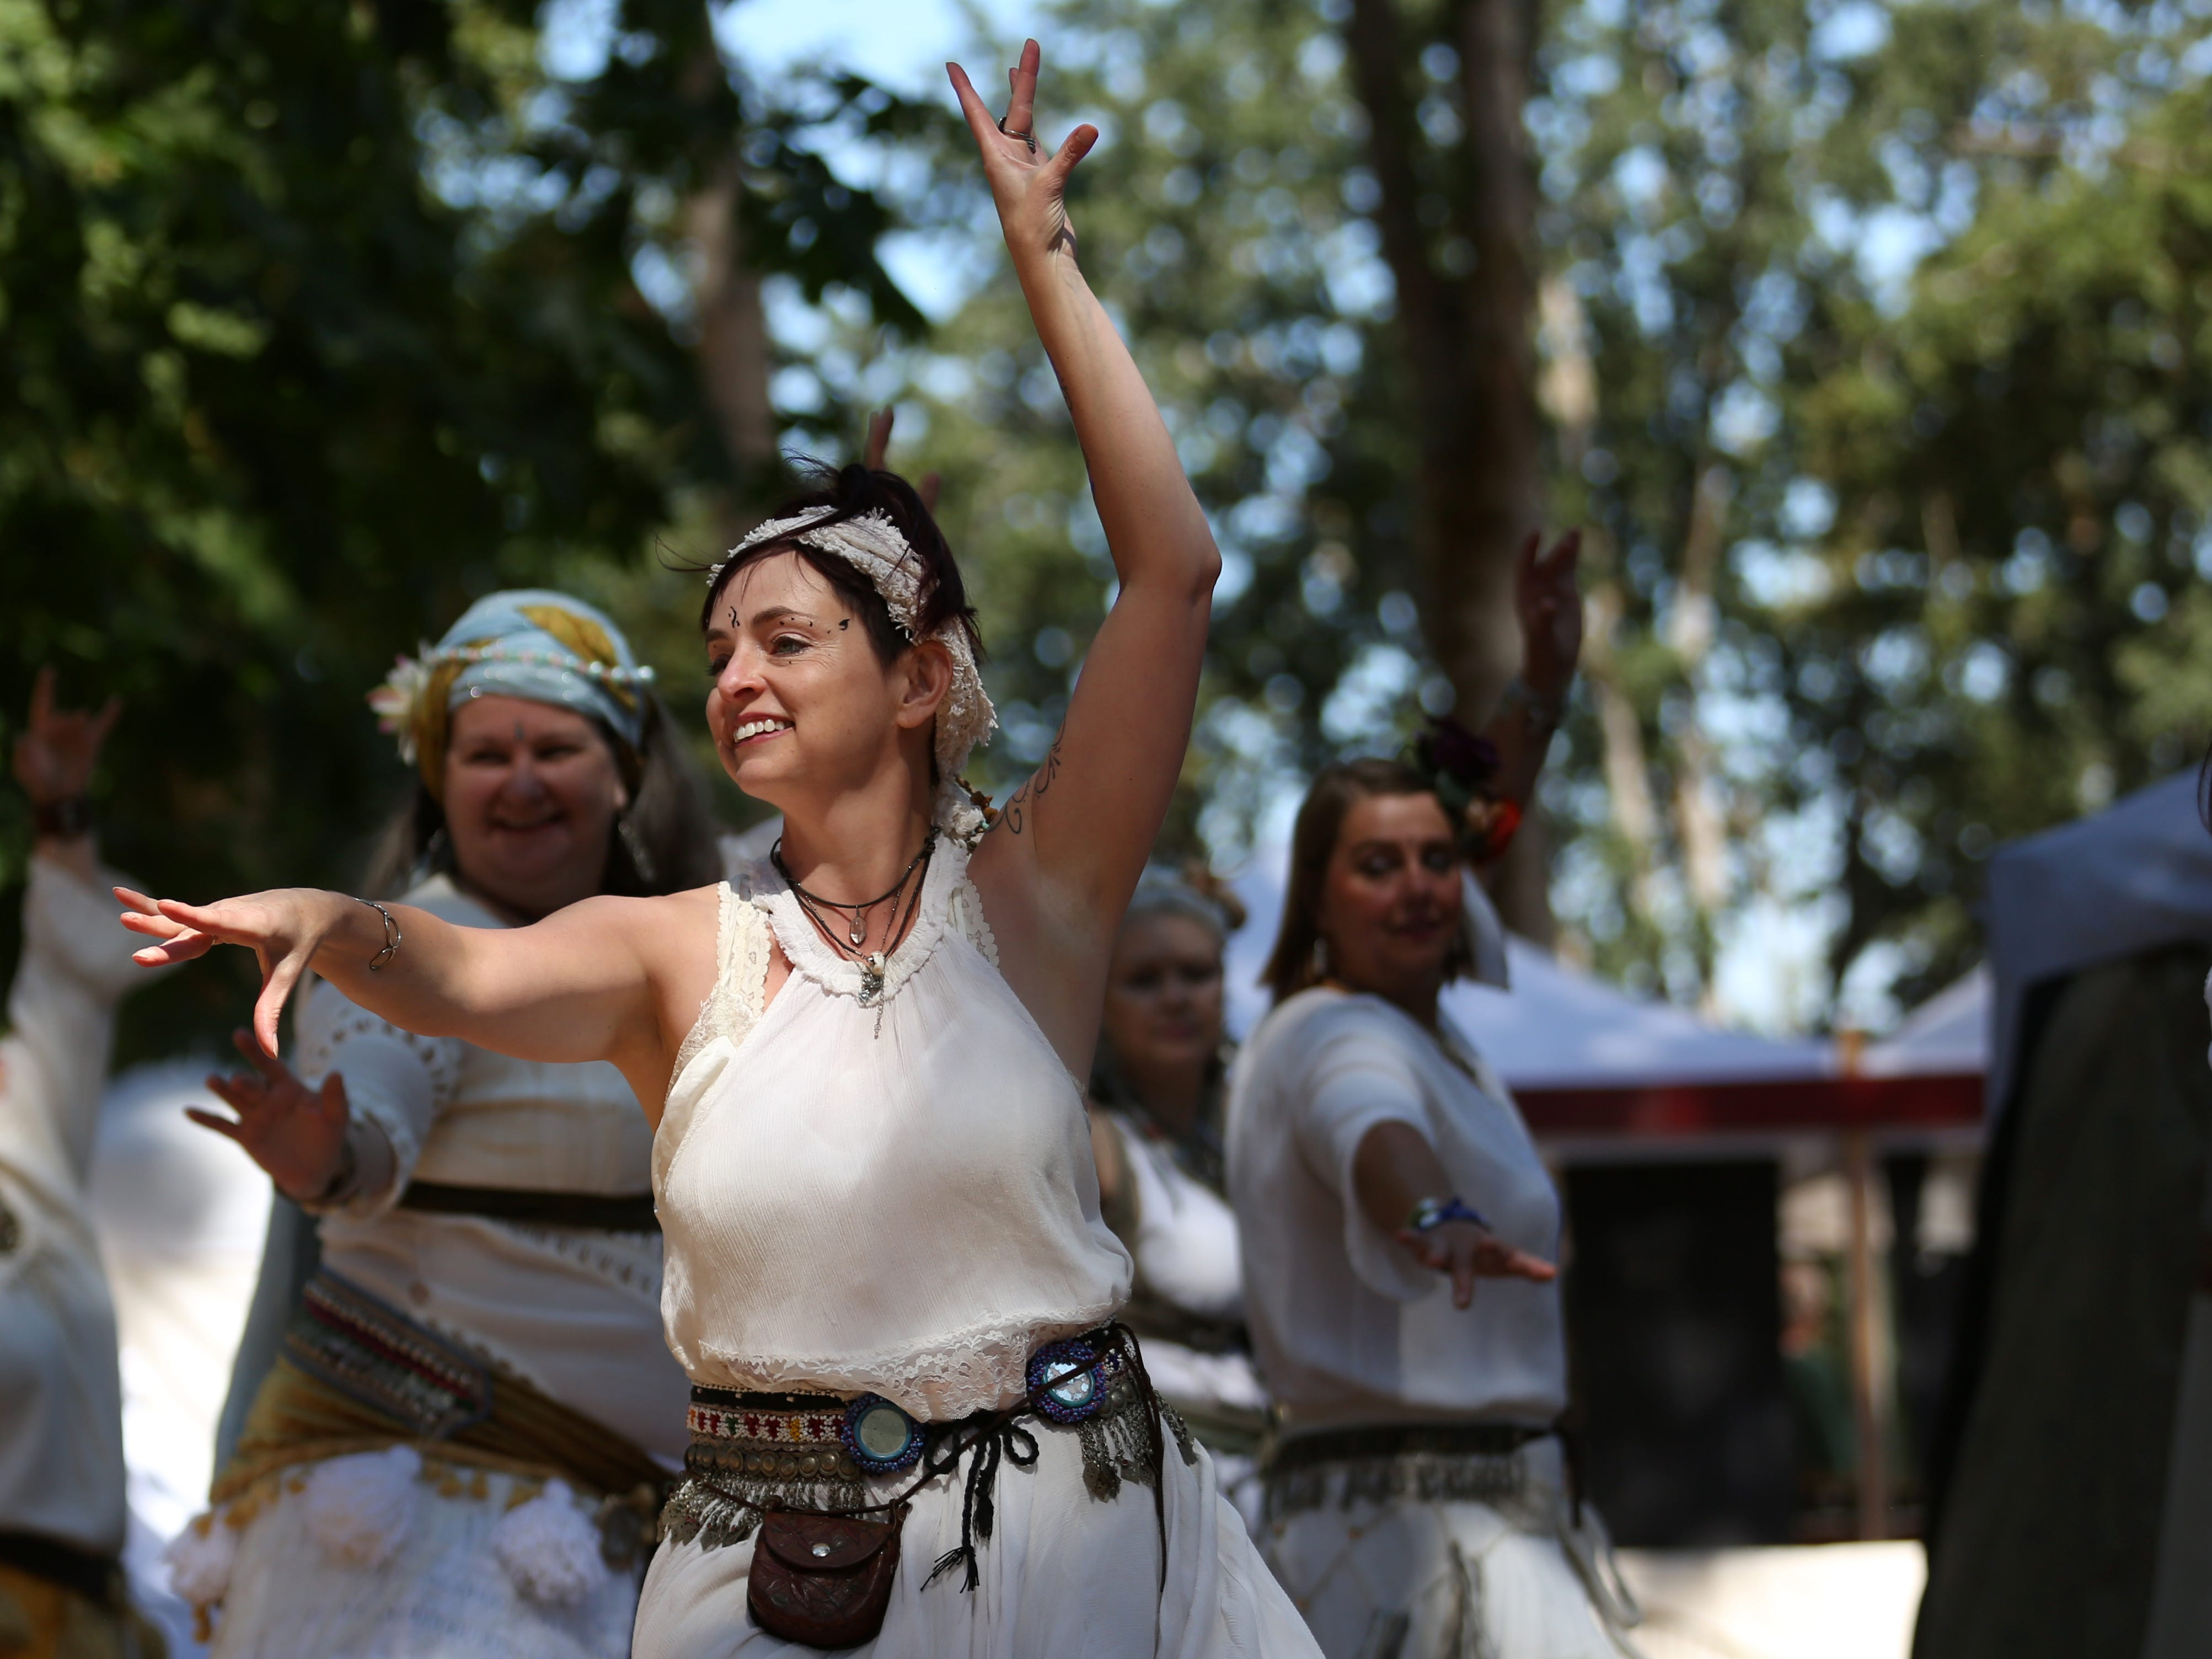 Raks Sarif Belly Dancing performs during the Canterbury Renaissance Faire near Silverton on Saturday, July 21, 2018. The faire continues July 22, 28 and 29.